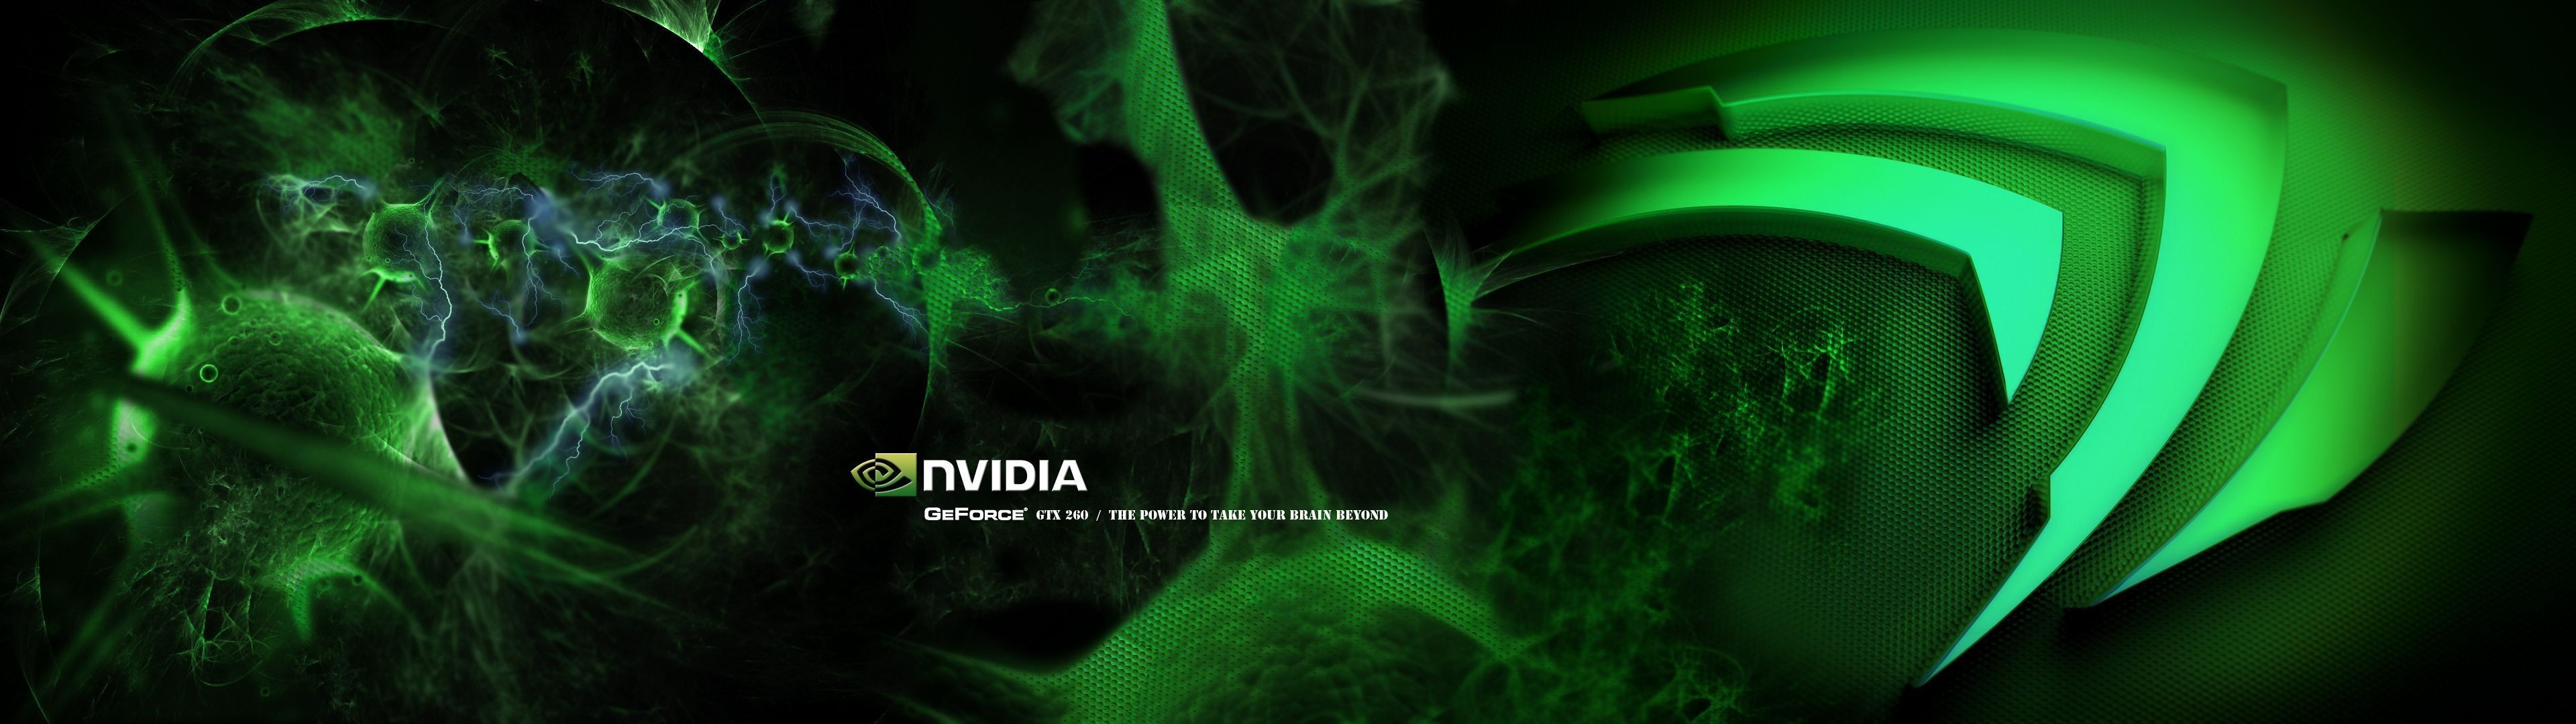 Nvidia Triple Monitor Wallpaper 7 Images